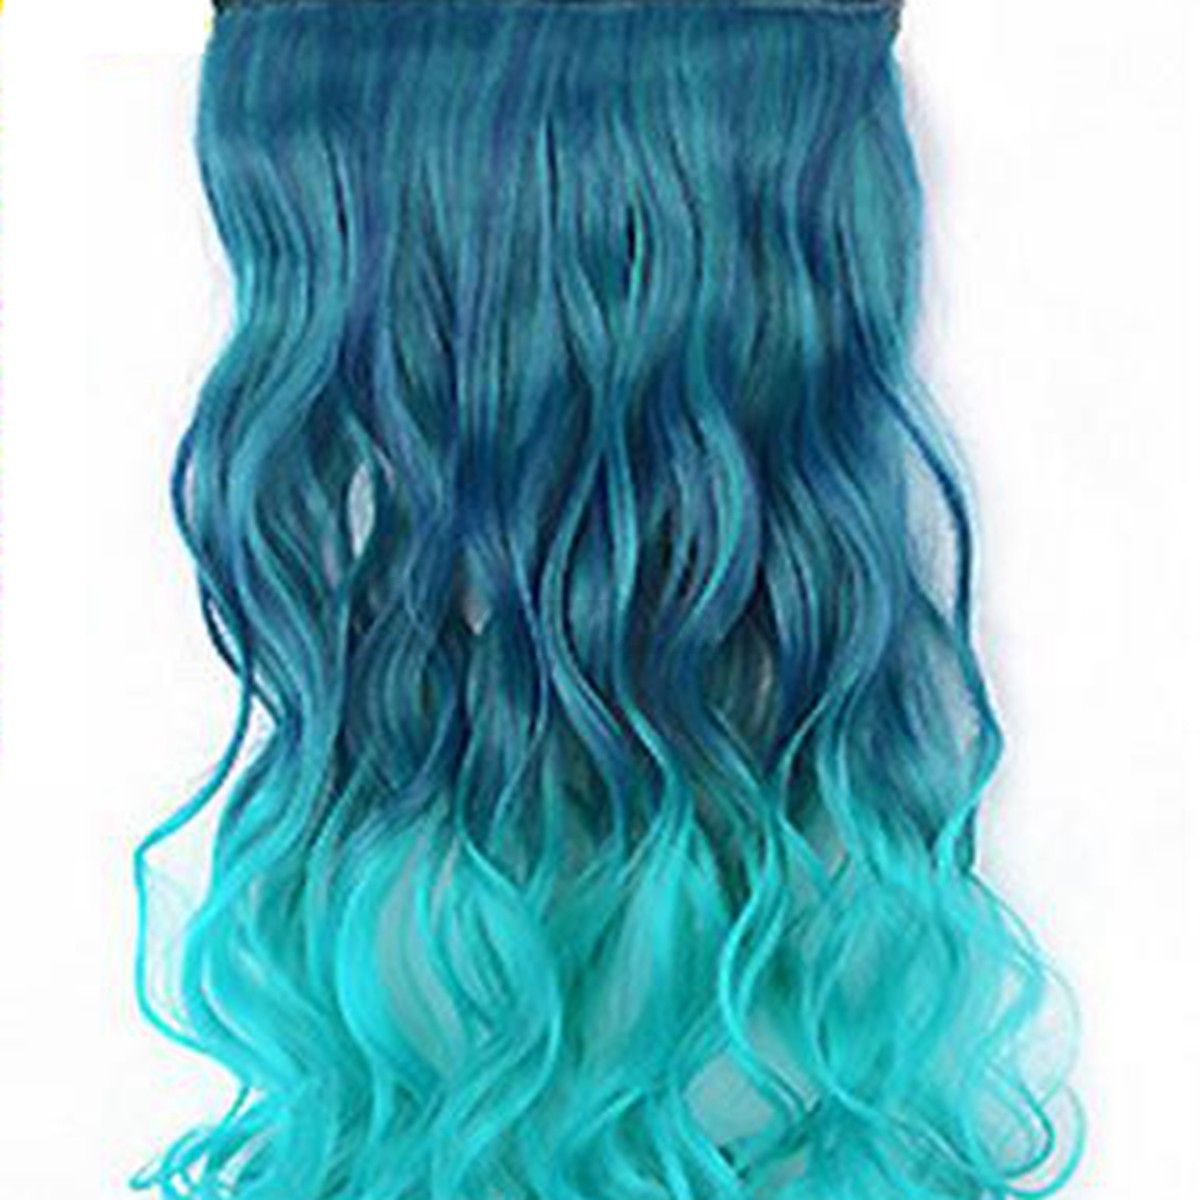 extensions cheveux clip perruque color ondul boucl raide long cosplay femme ebay - Perruque Colore